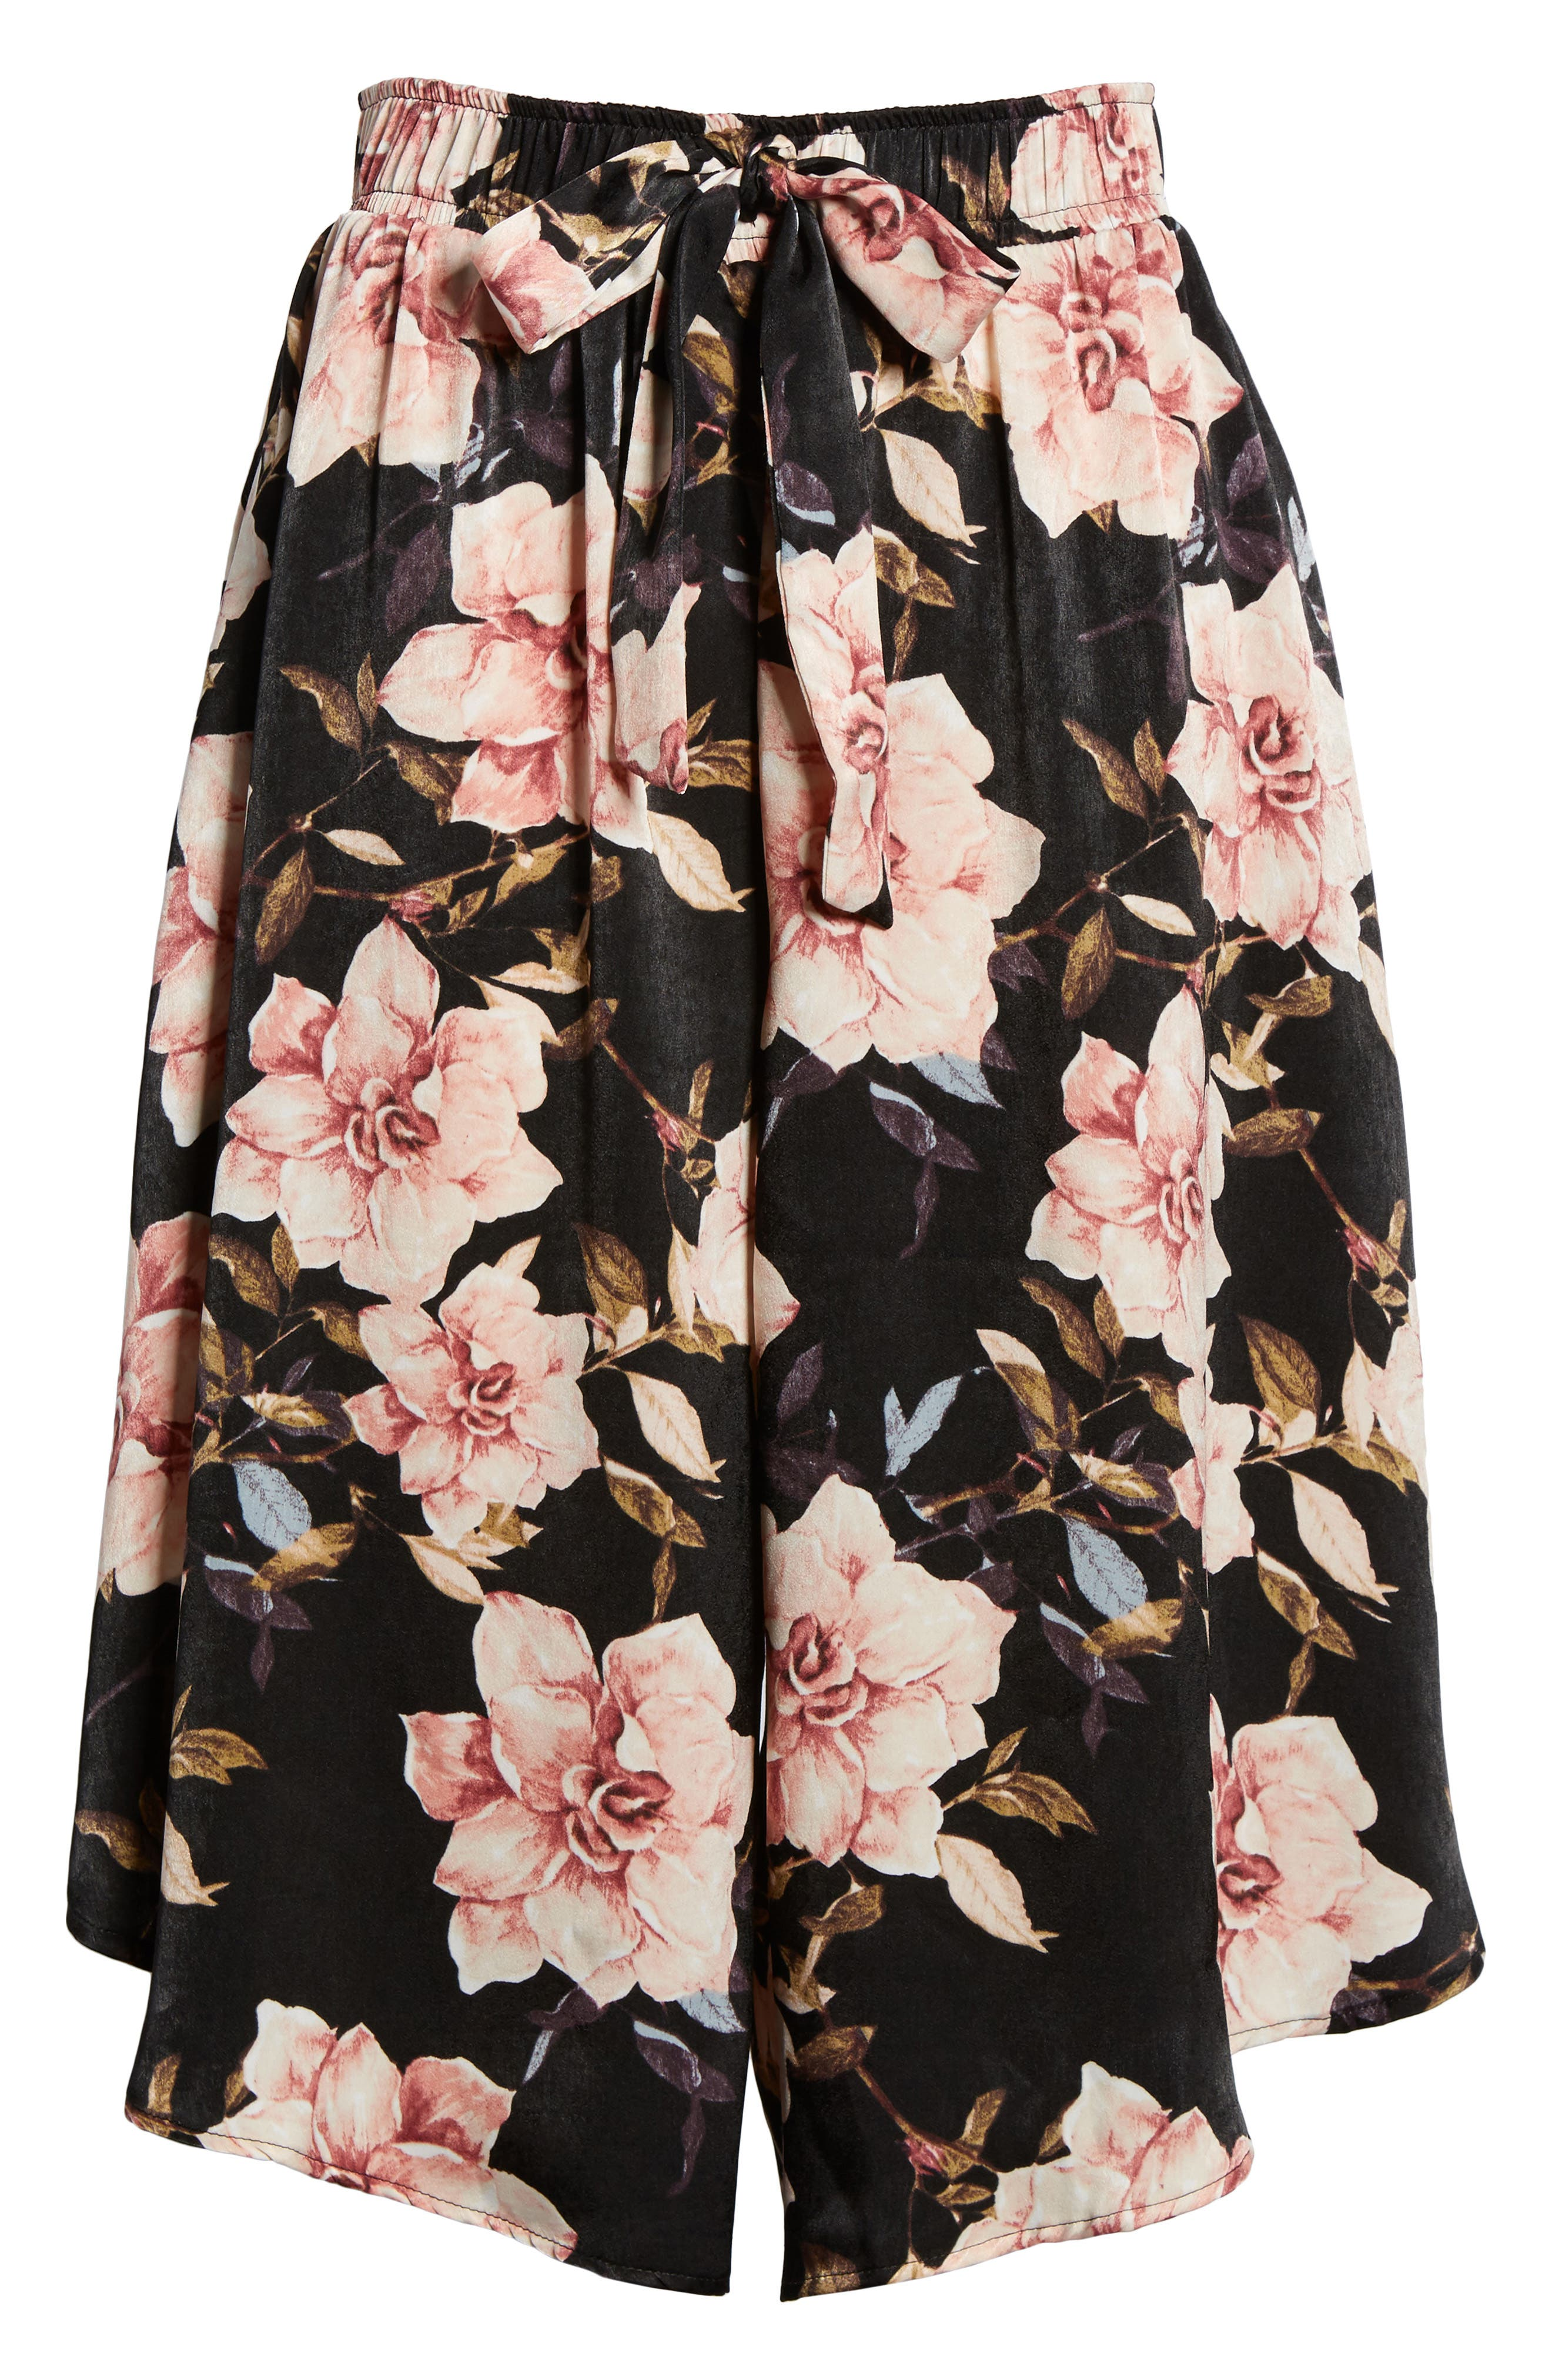 Floral Culottes,                             Alternate thumbnail 7, color,                             Black Garden Rose Floral